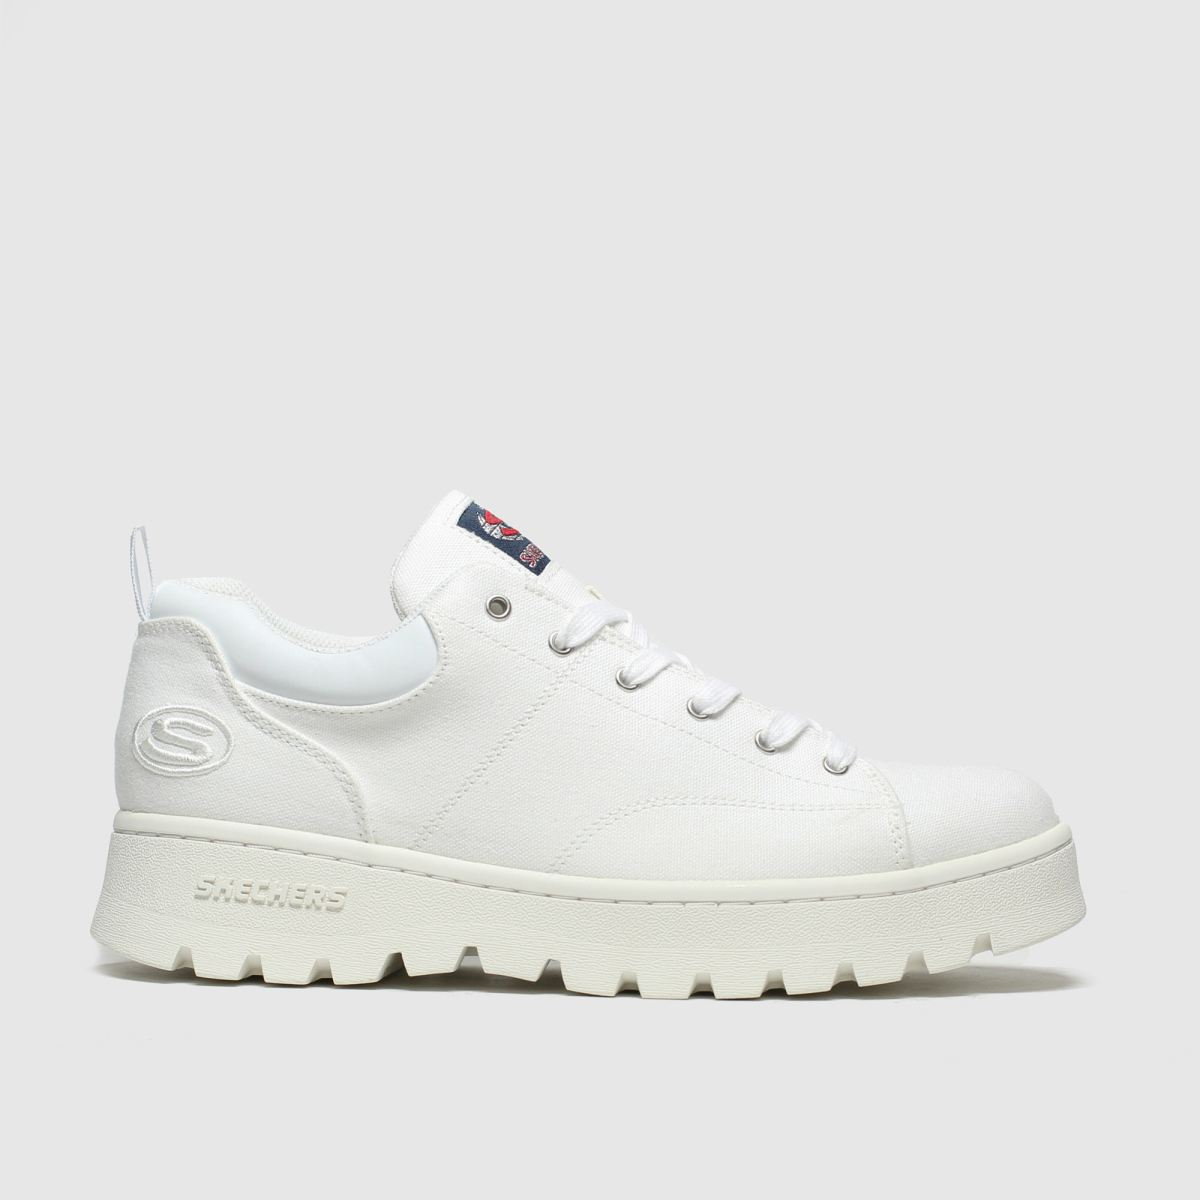 Skechers White Cleats Luckier Trainers